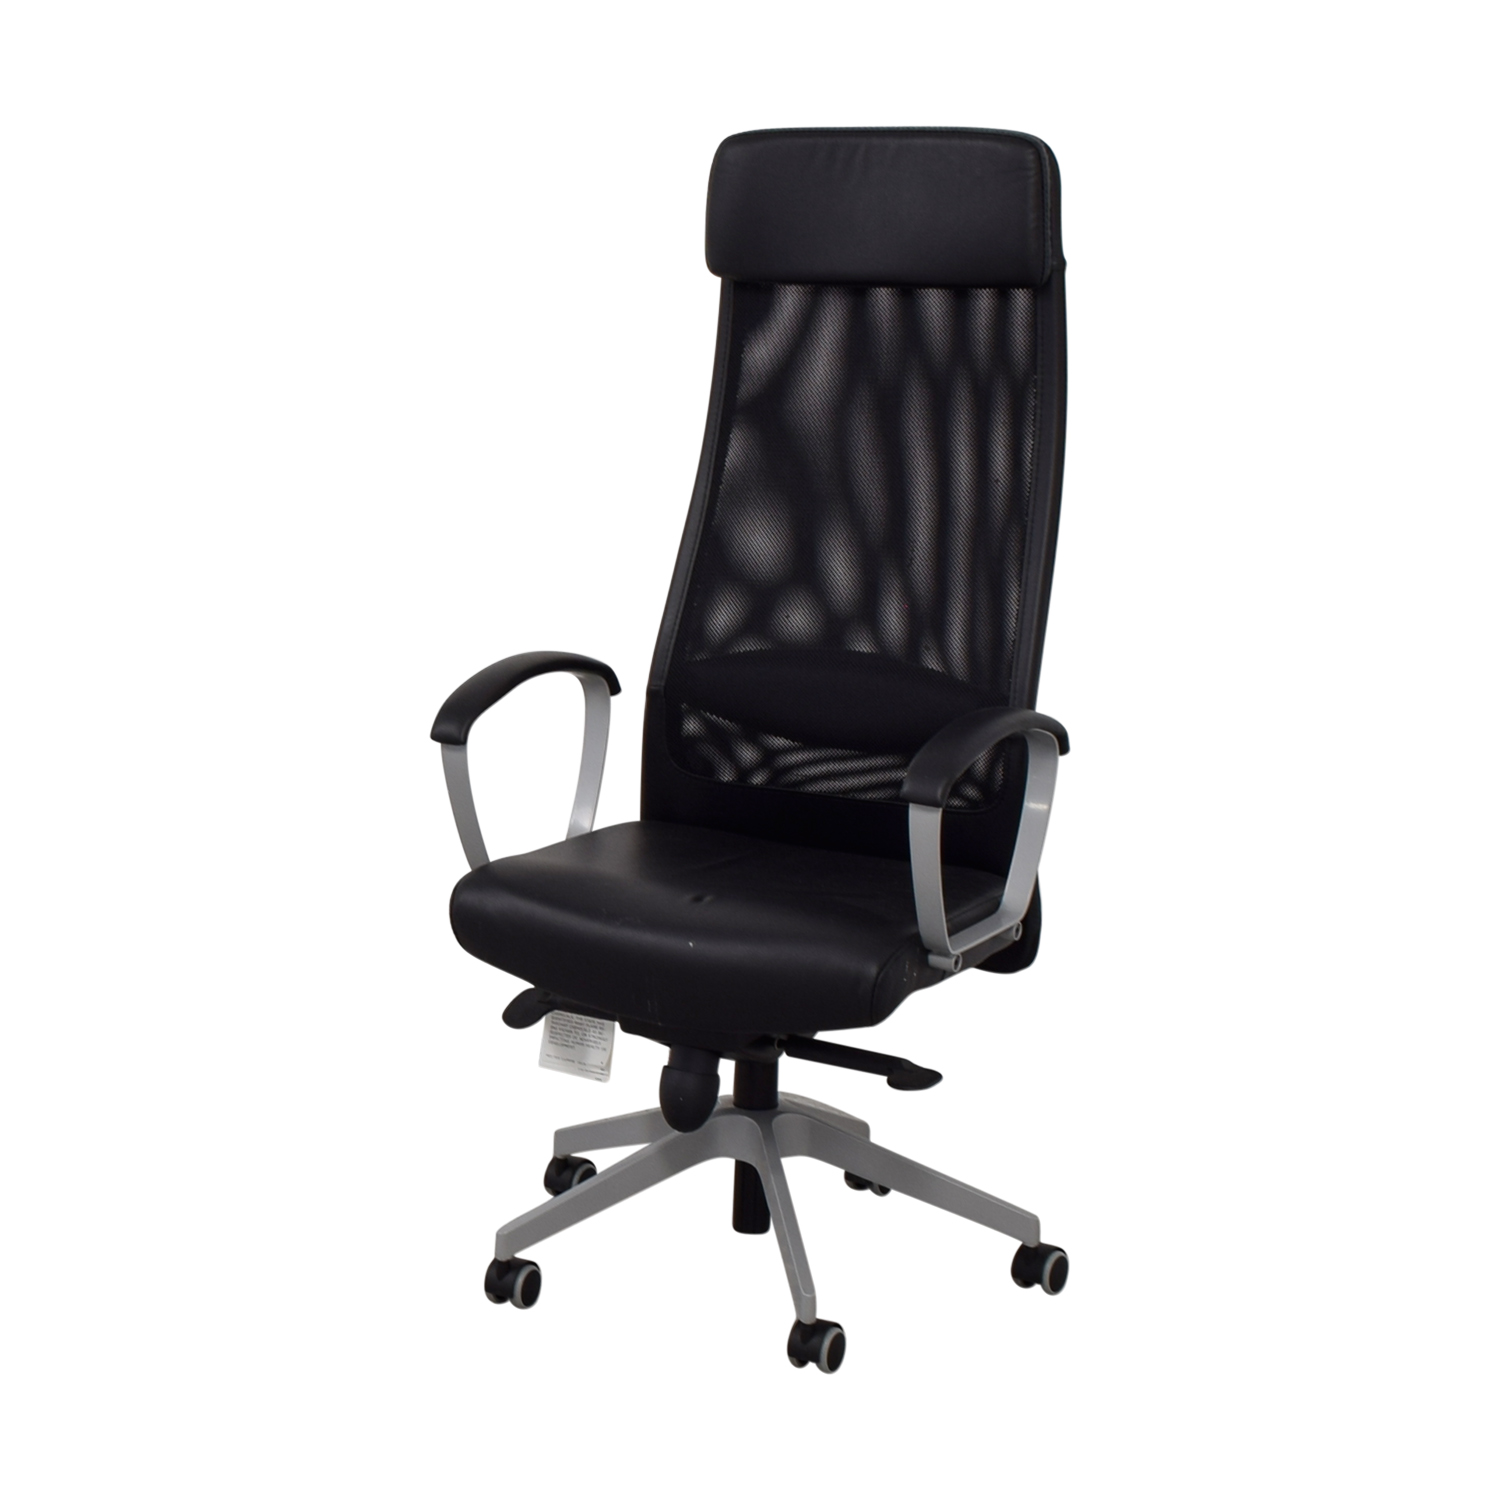 Ikea Black Chair 83 Off Ikea Ikea Black Adjustable Reclining Office